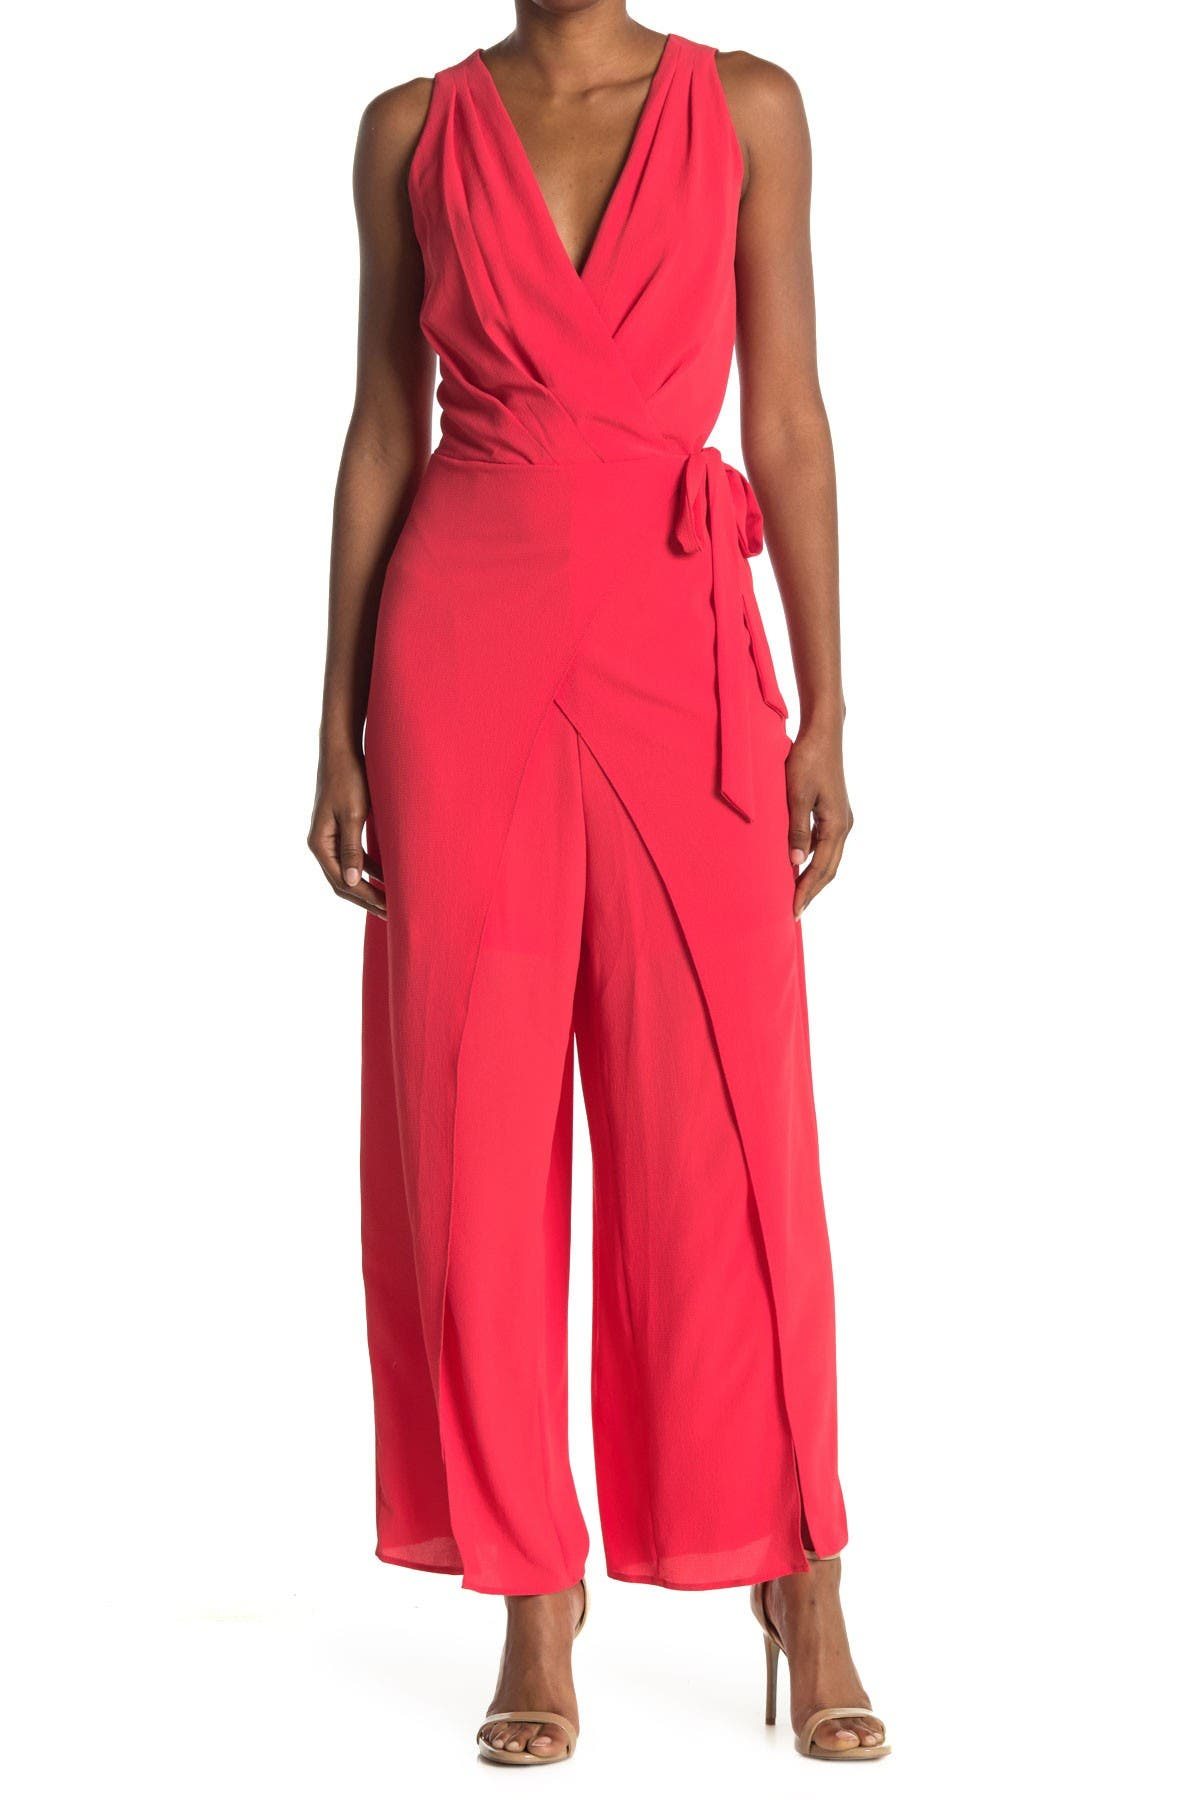 Image of London Times Catalina Solid Jumpsuit